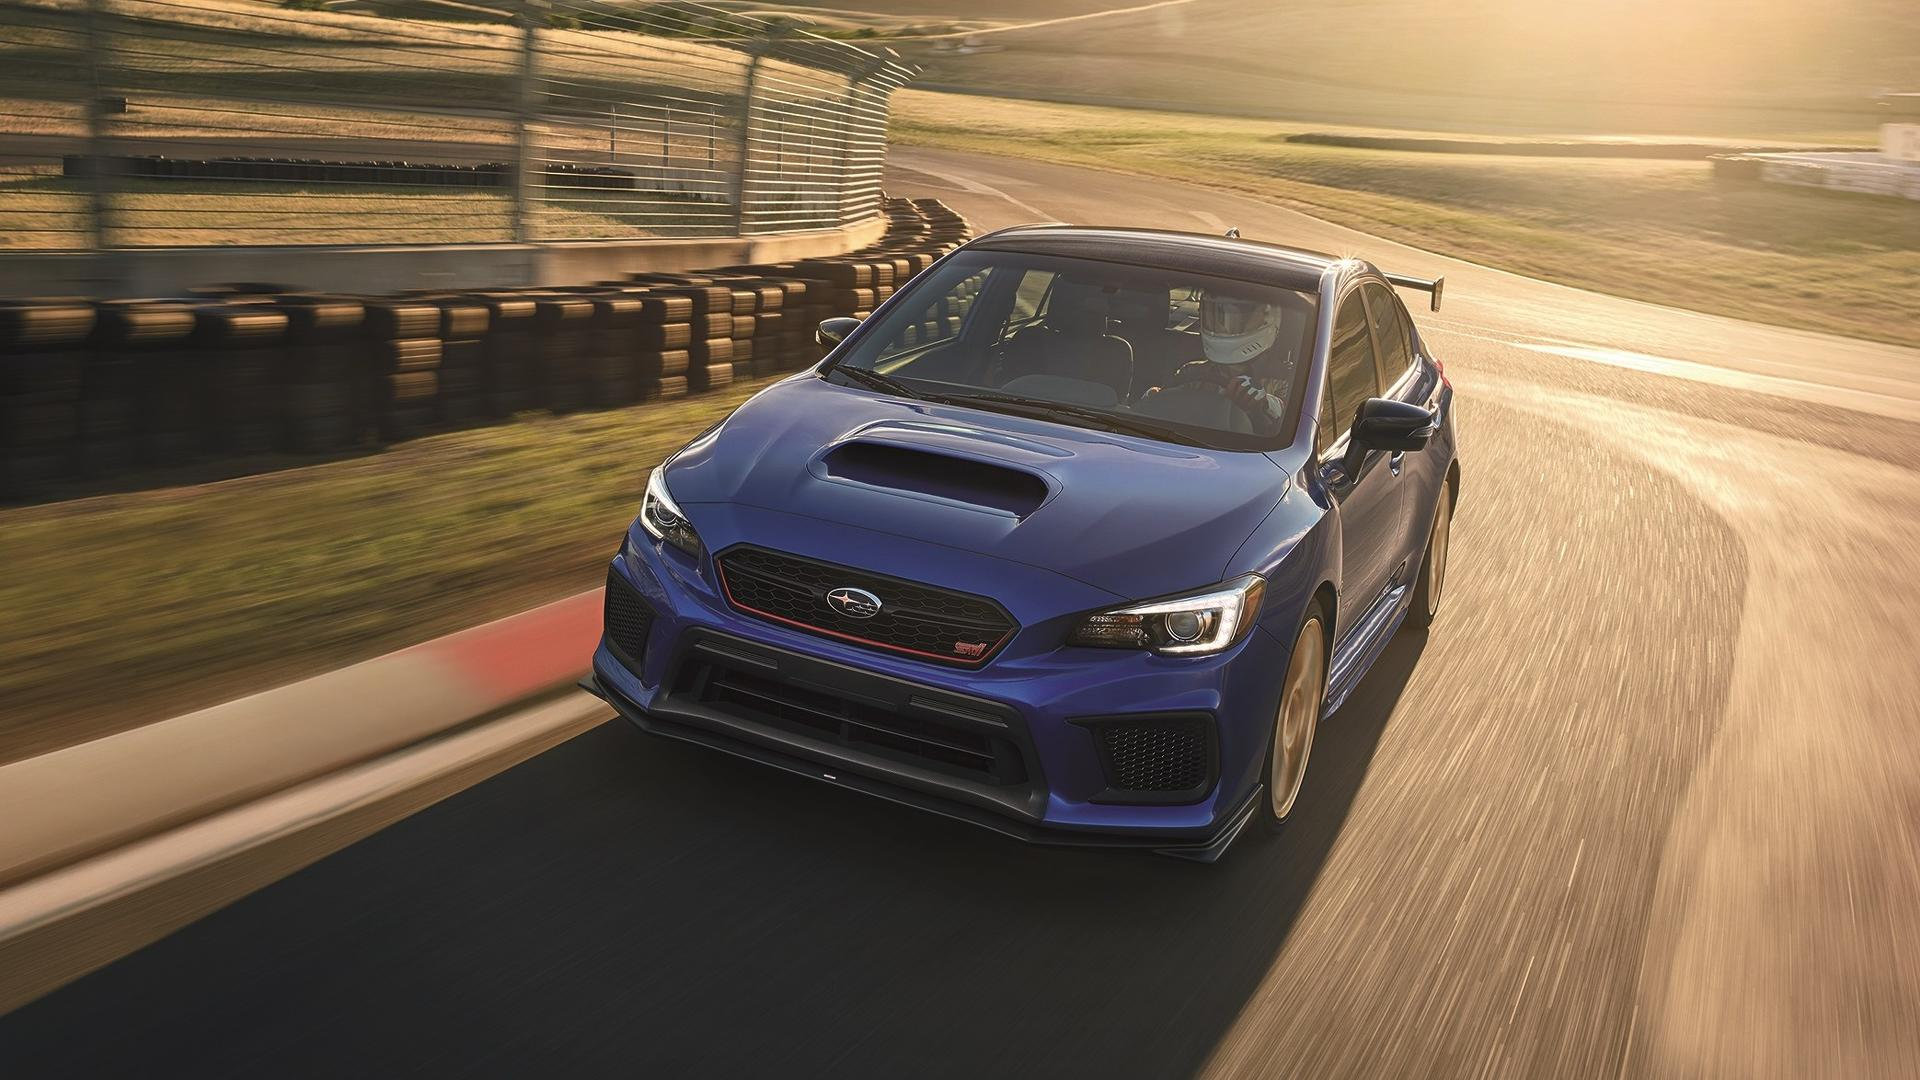 2018 Subaru Wrx Sti Type Ra Adds Power Loses Weight